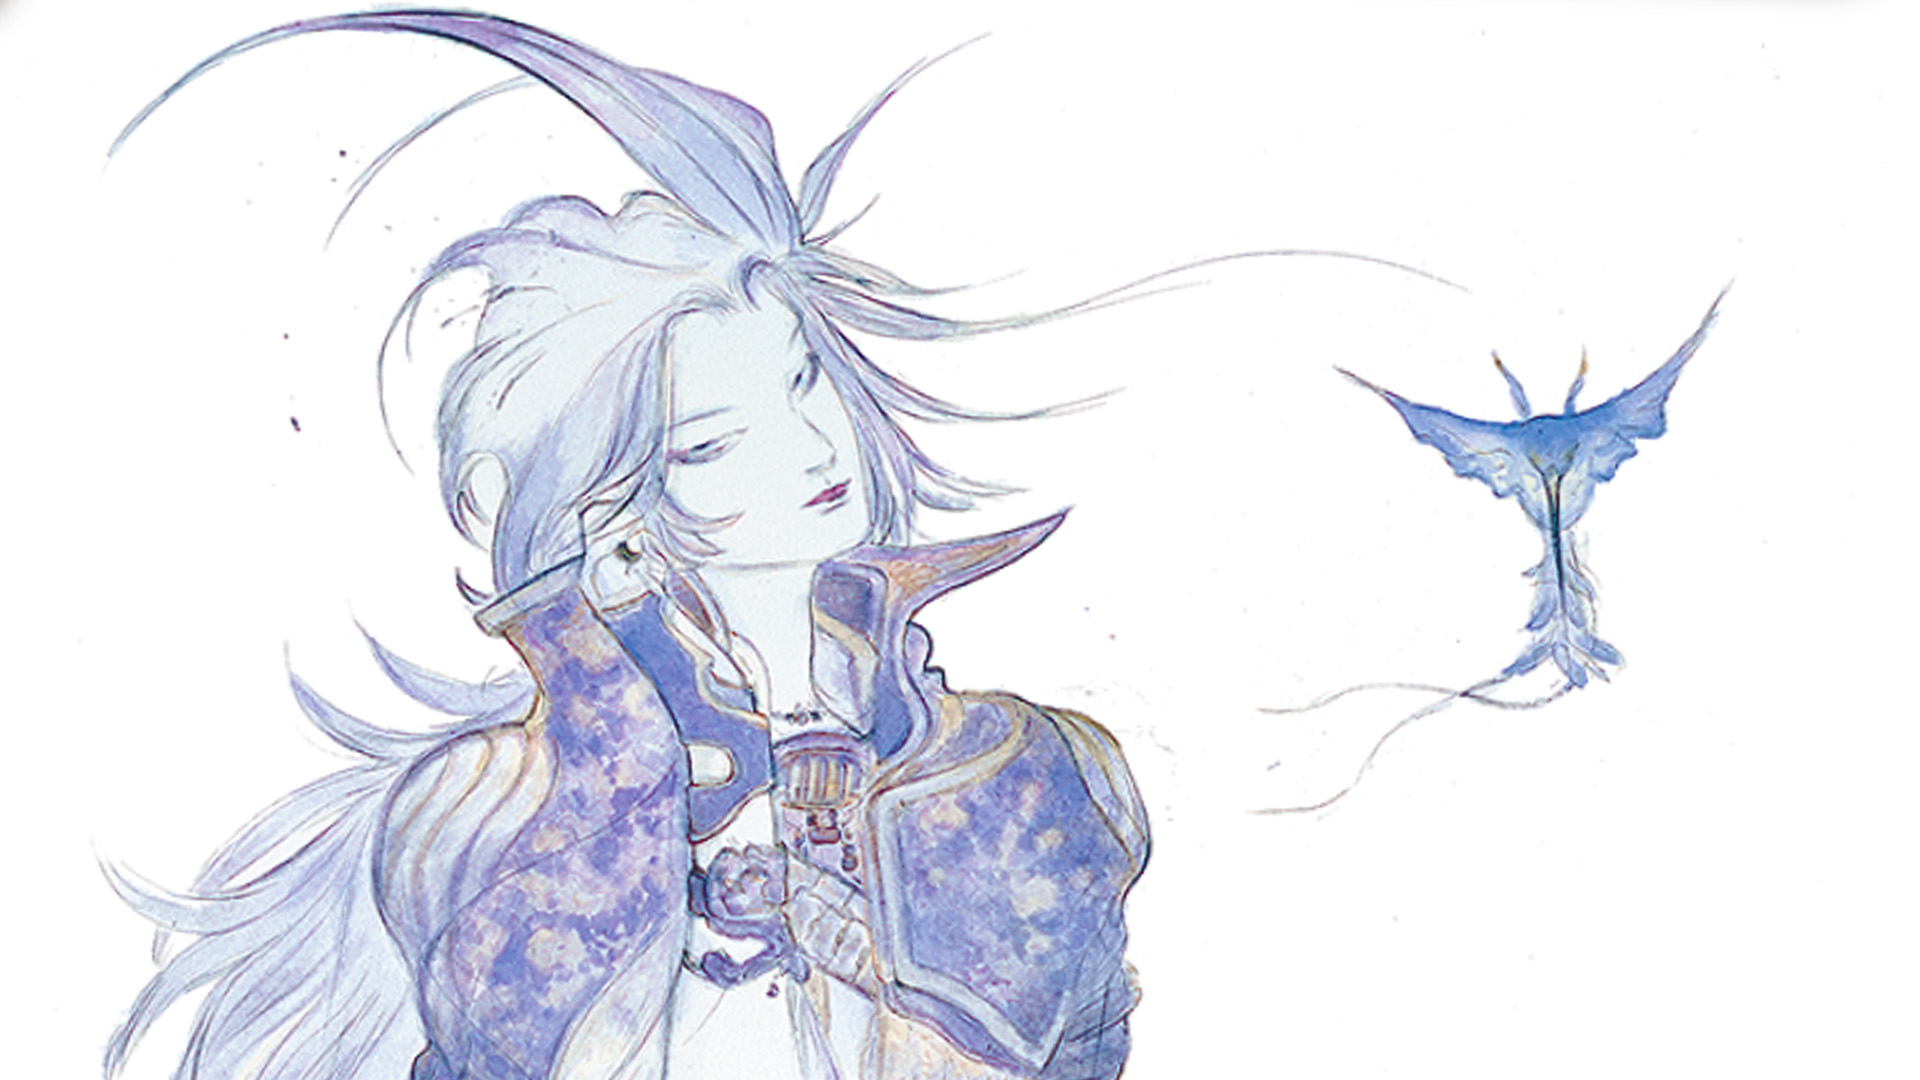 Opus XI Card of the Week - Kuja